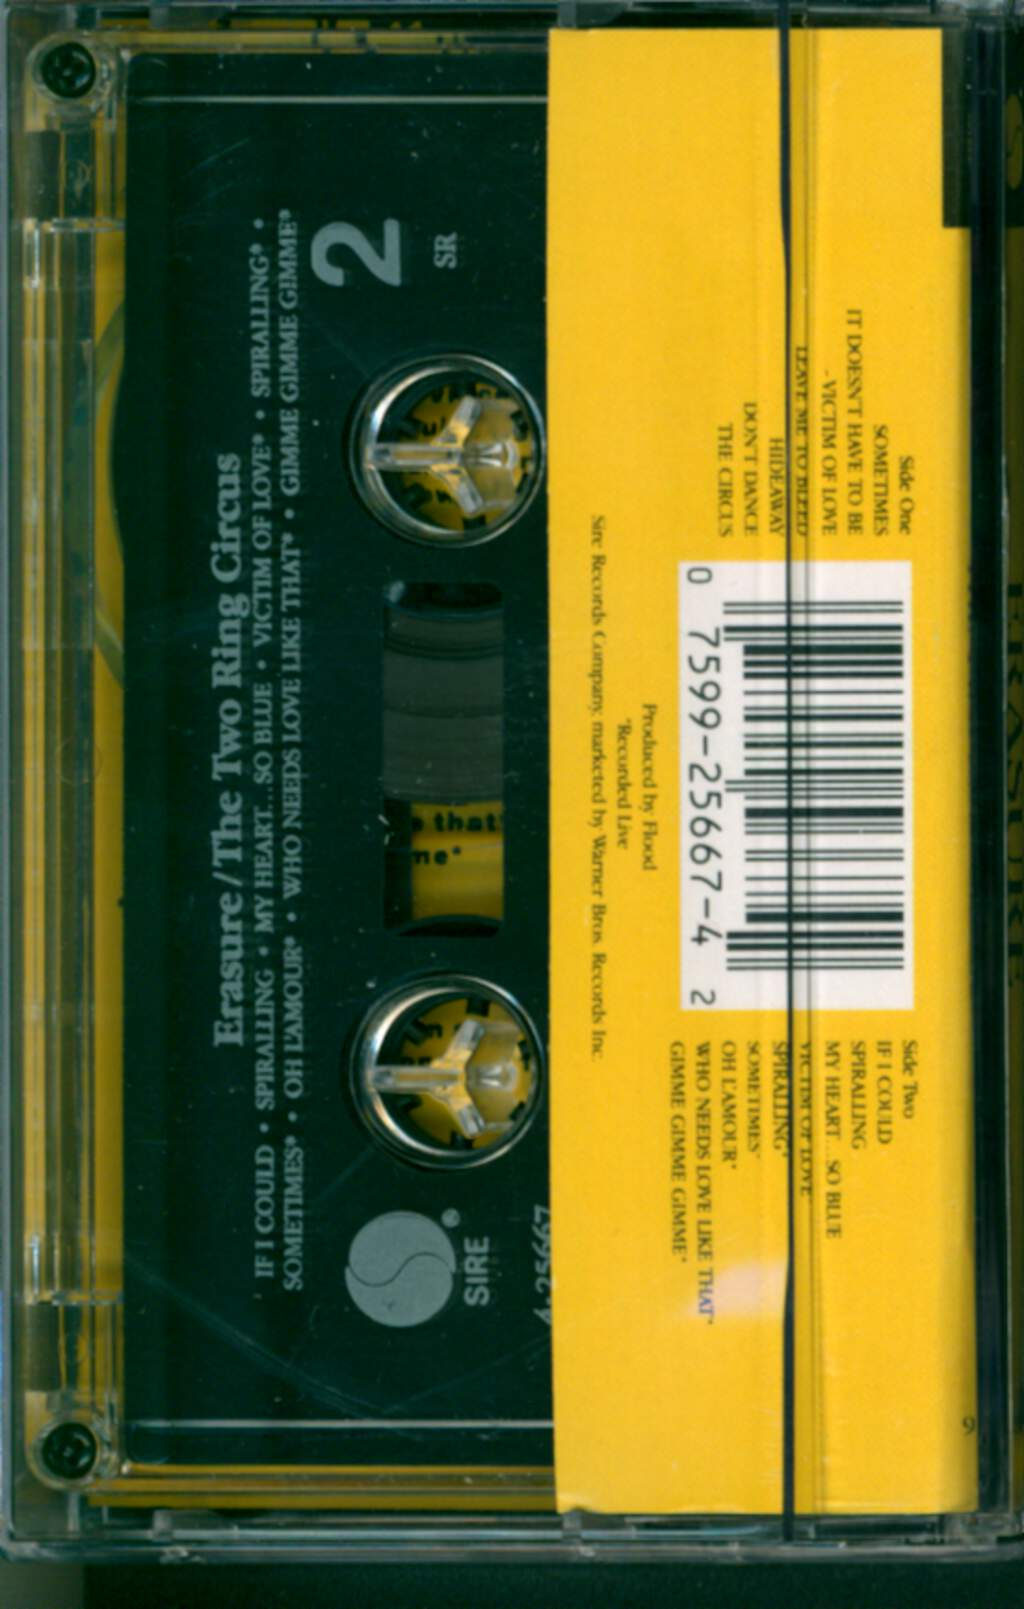 Erasure: The Two Ring Circus, Compact Cassette